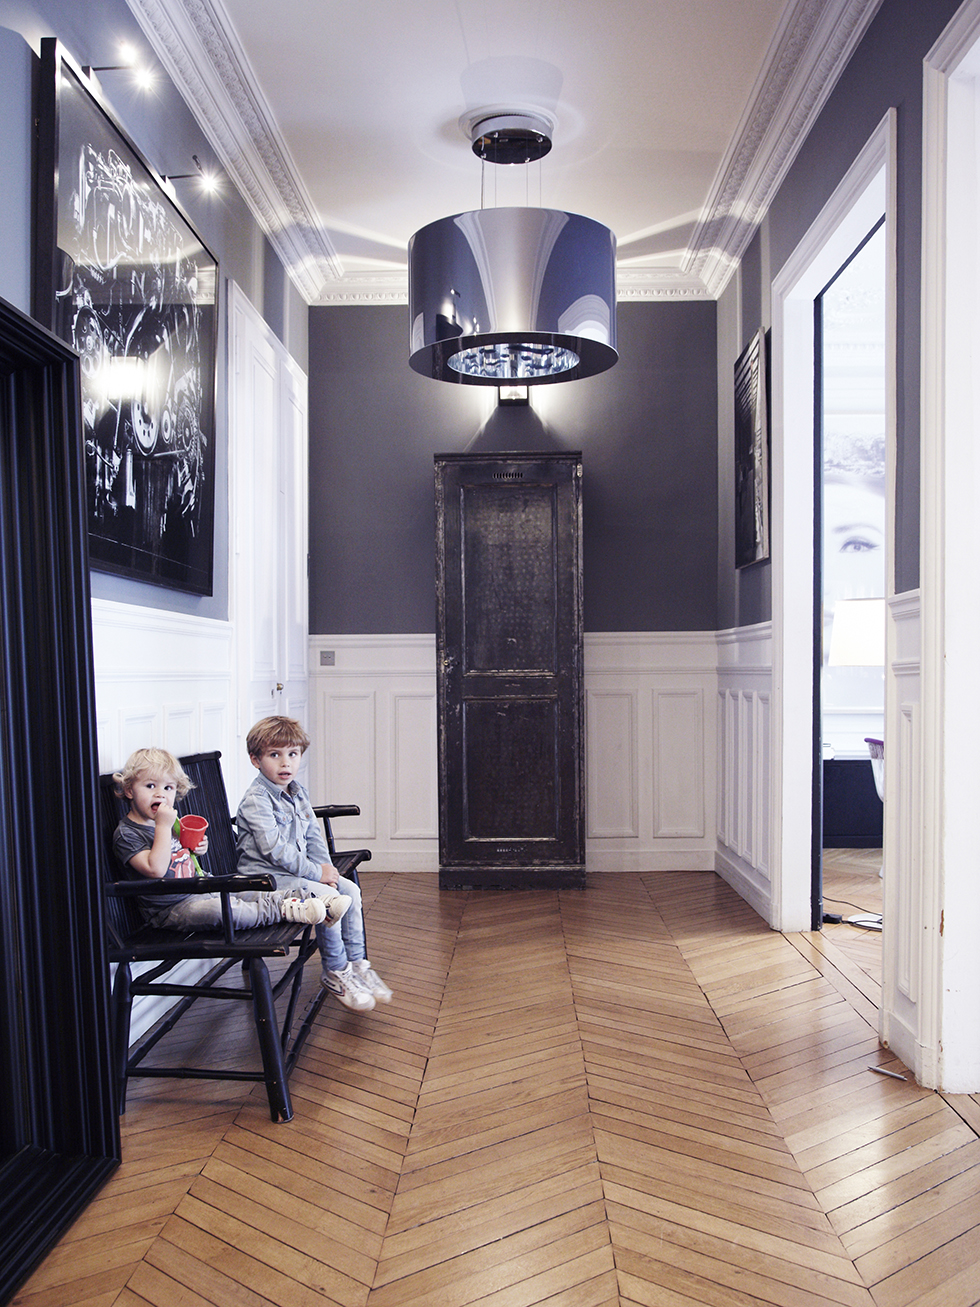 Un int rieur parisien so chic frenchy fancy for Interieur haussmannien